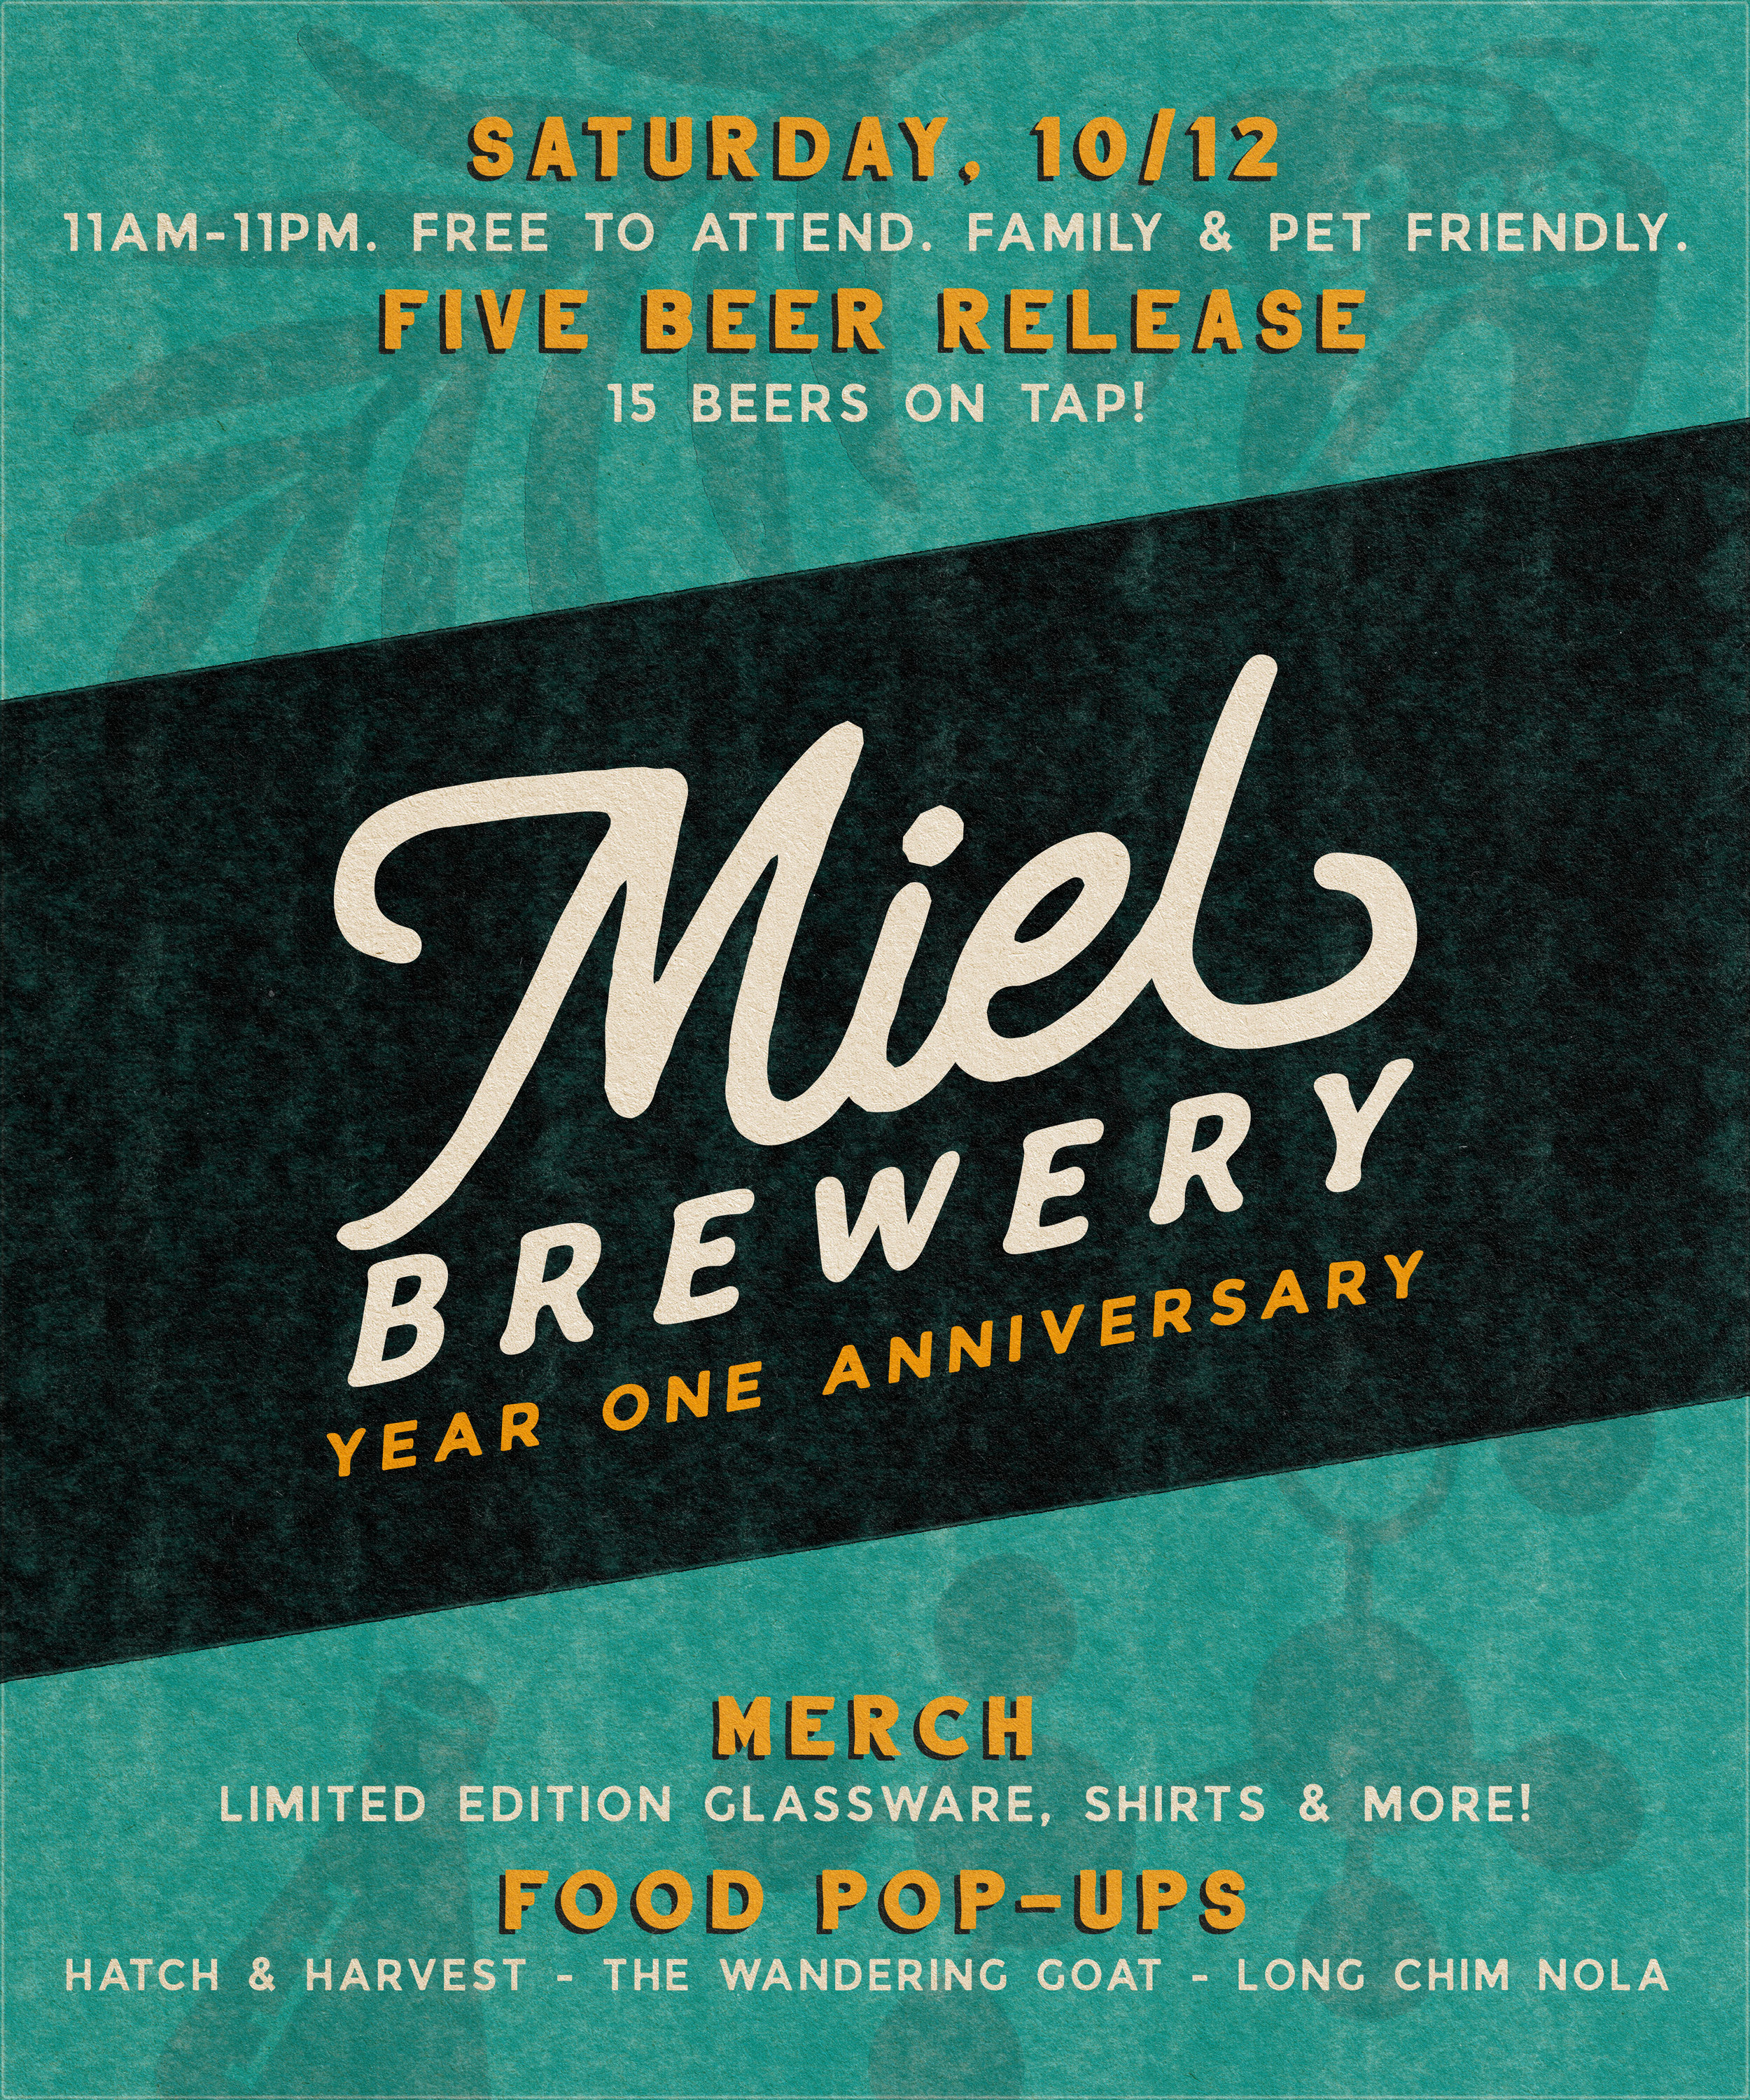 Miel Brewery_New Orleans_One Year Anniversary_October 12 2019